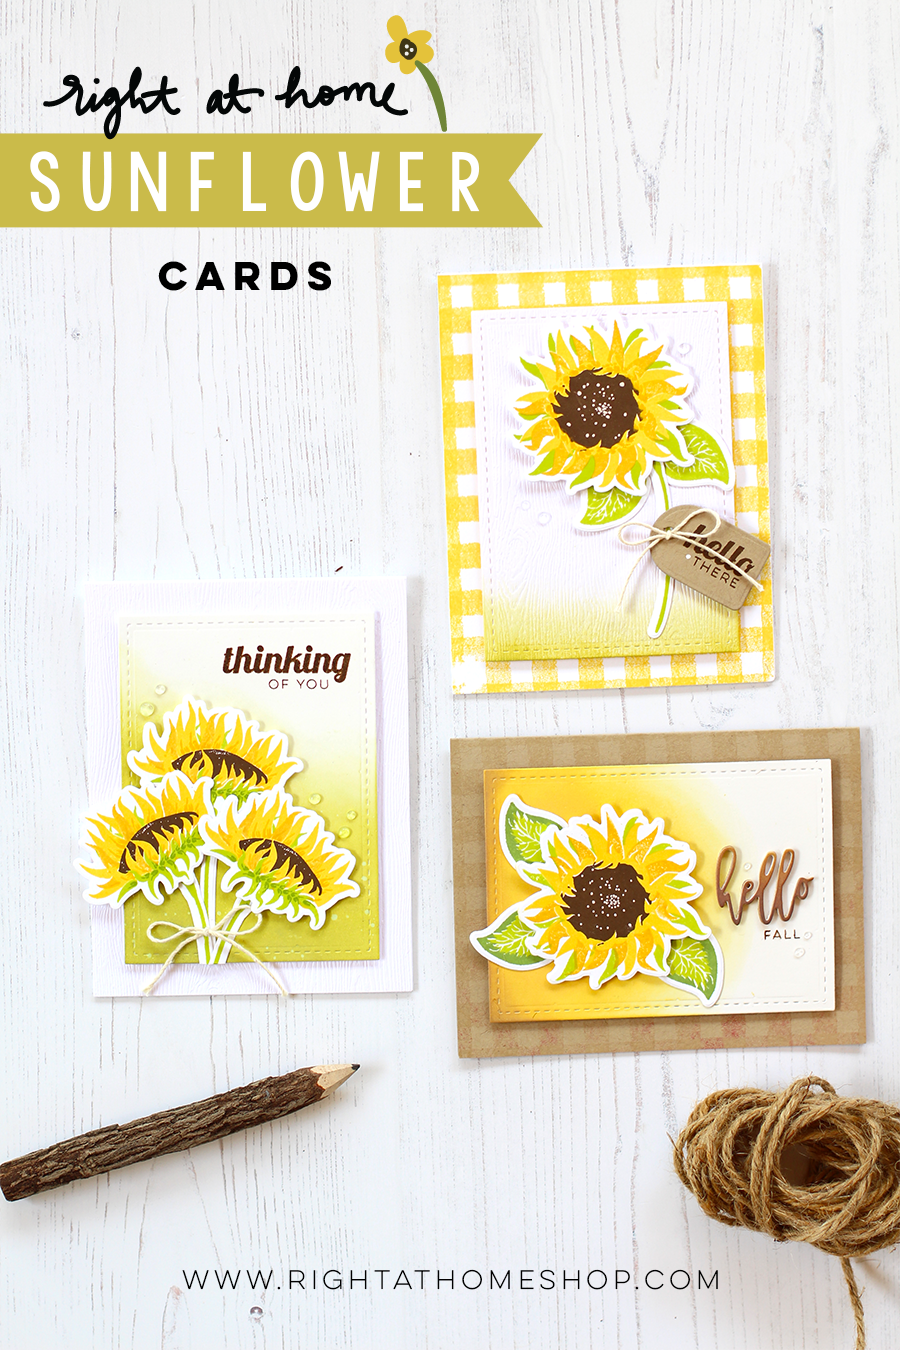 3 Sunflower Cards by Nicole // rightathomeshop.com/blog